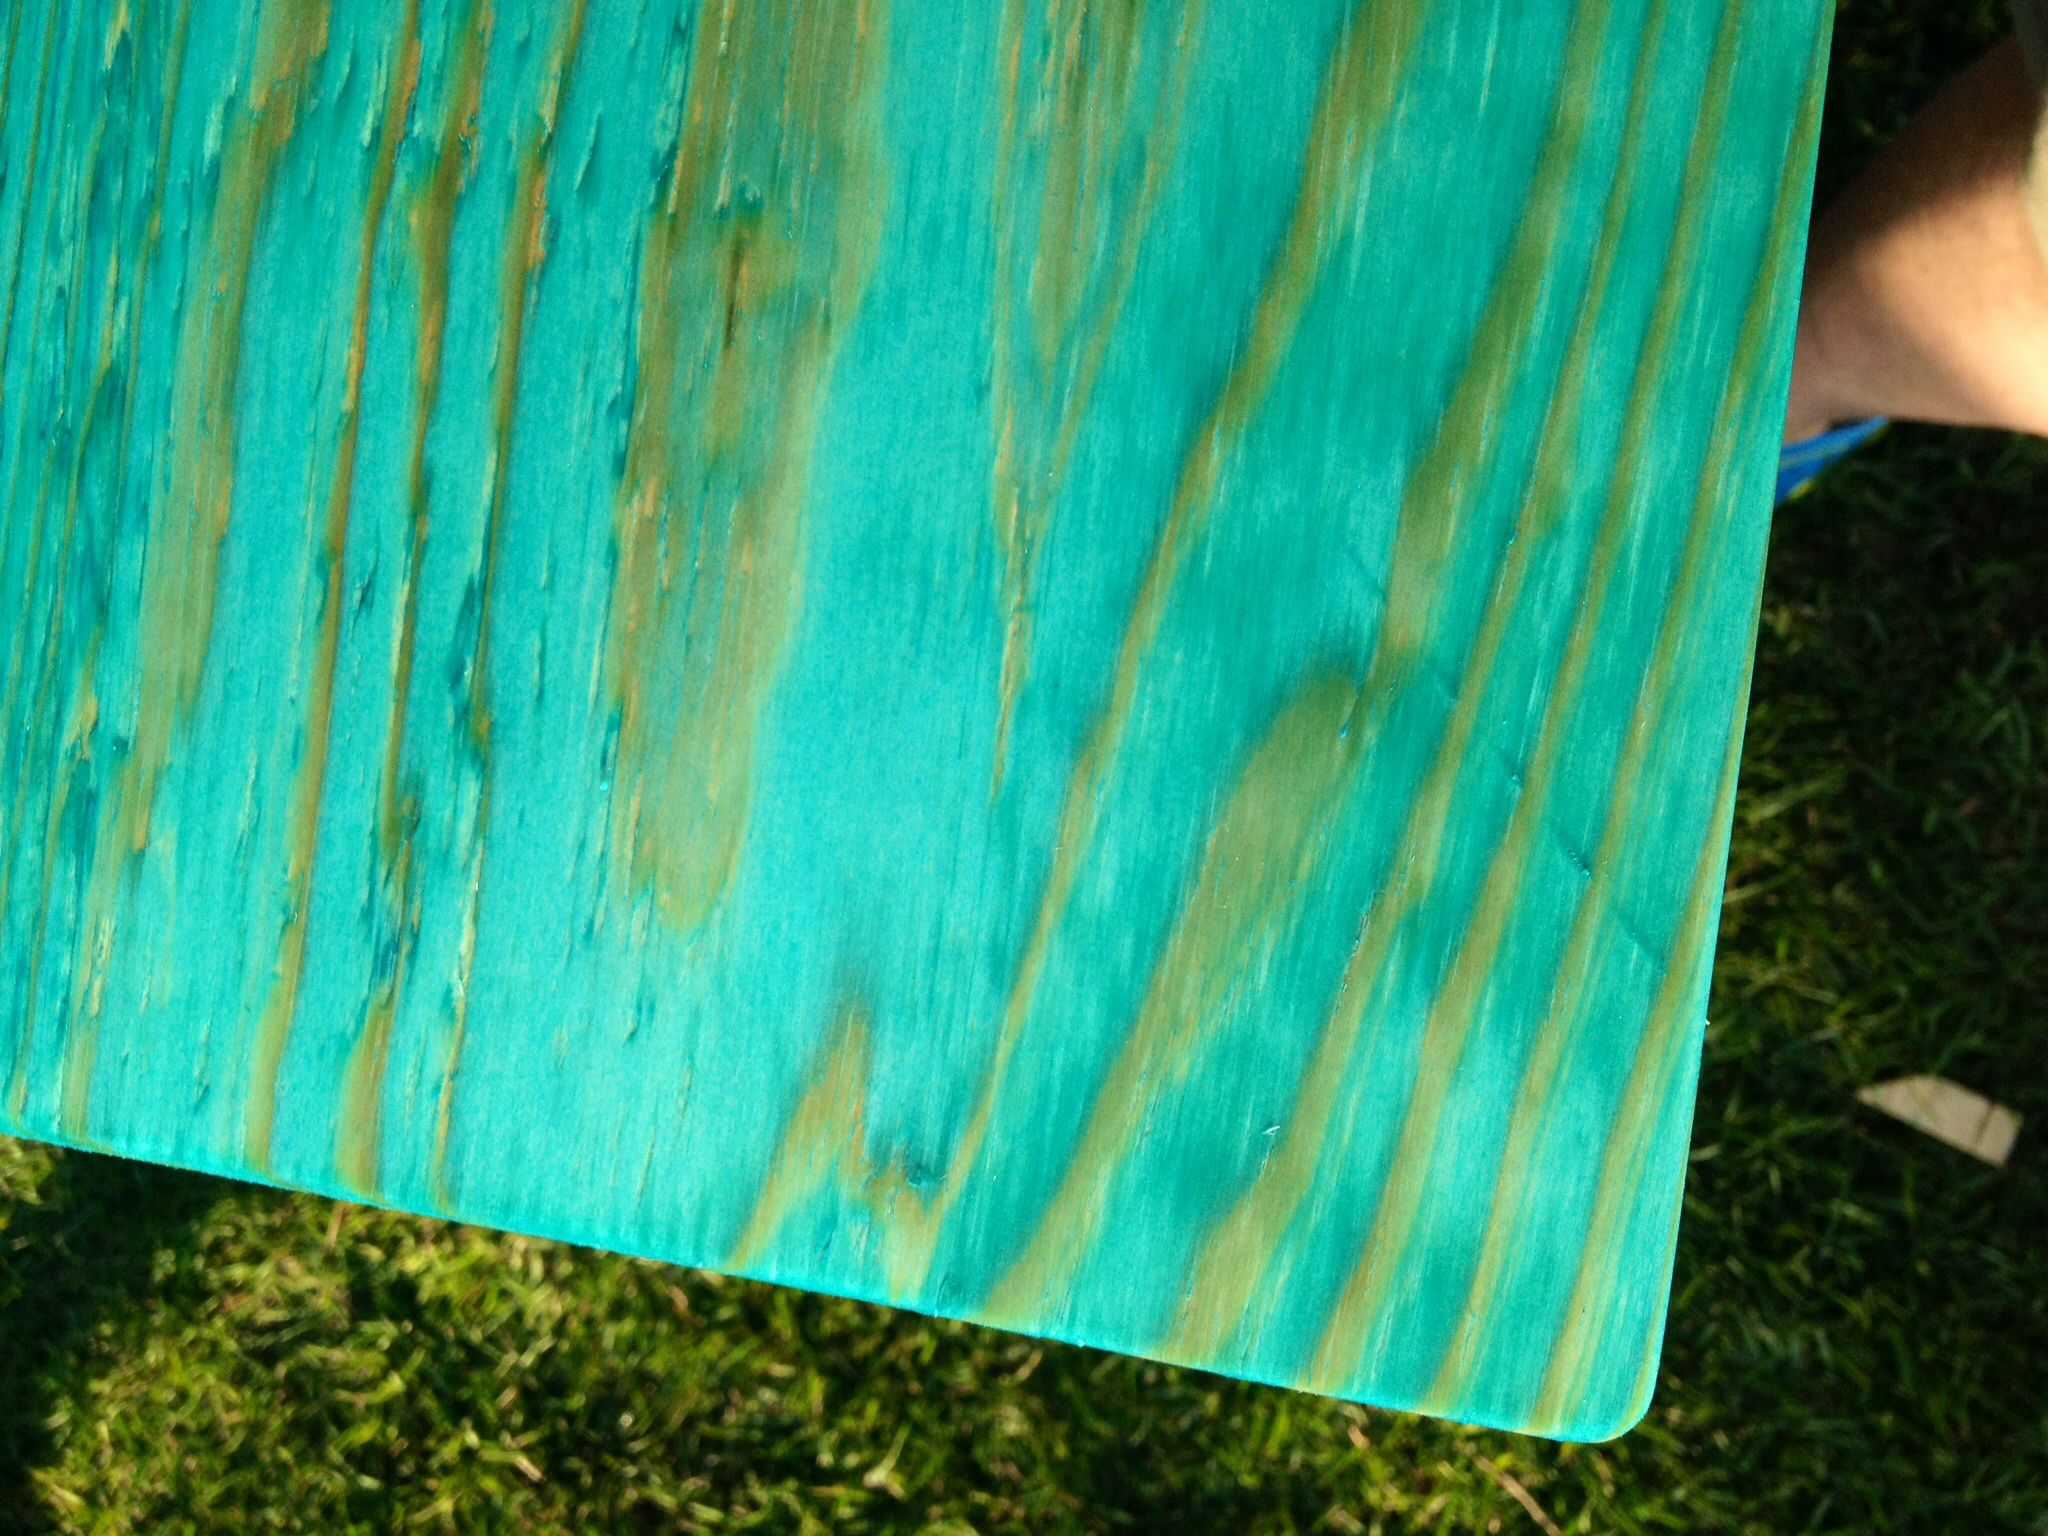 Aquamarine Rit Dye used to stain wood for new outdoor stove